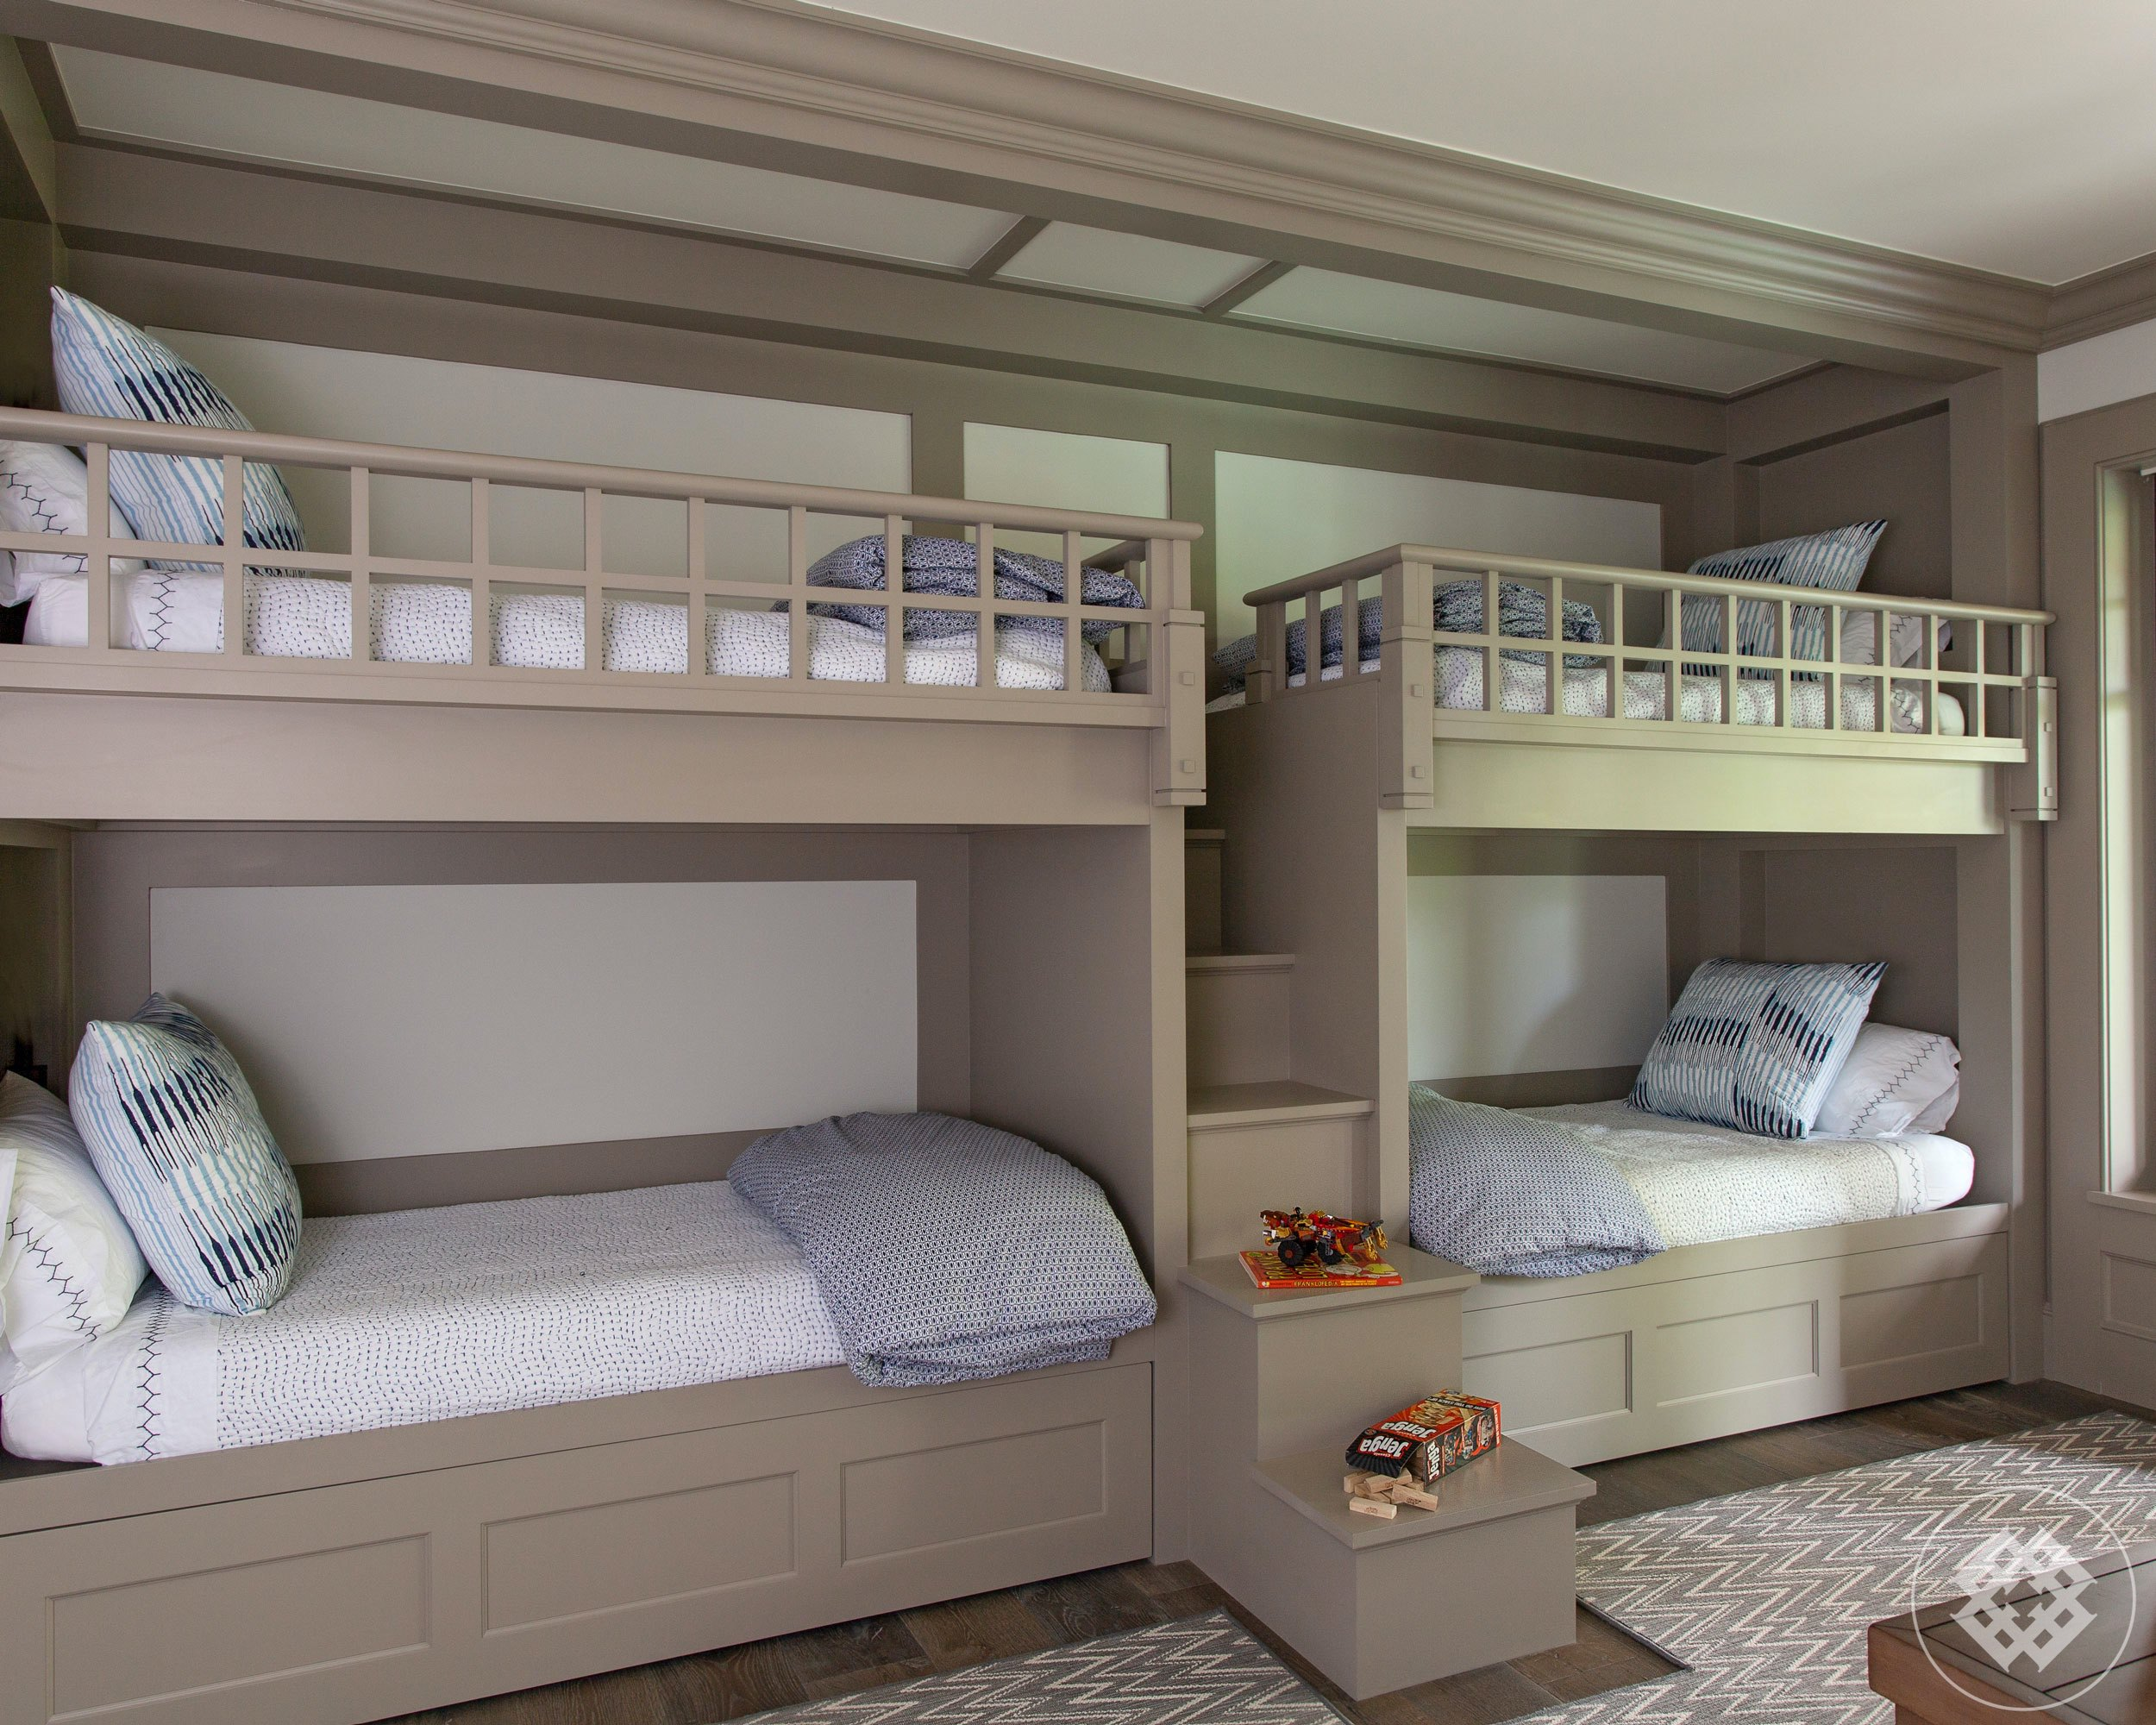 kkl-custom-built-lake-house-bunk-room-sleeps-six.jpg